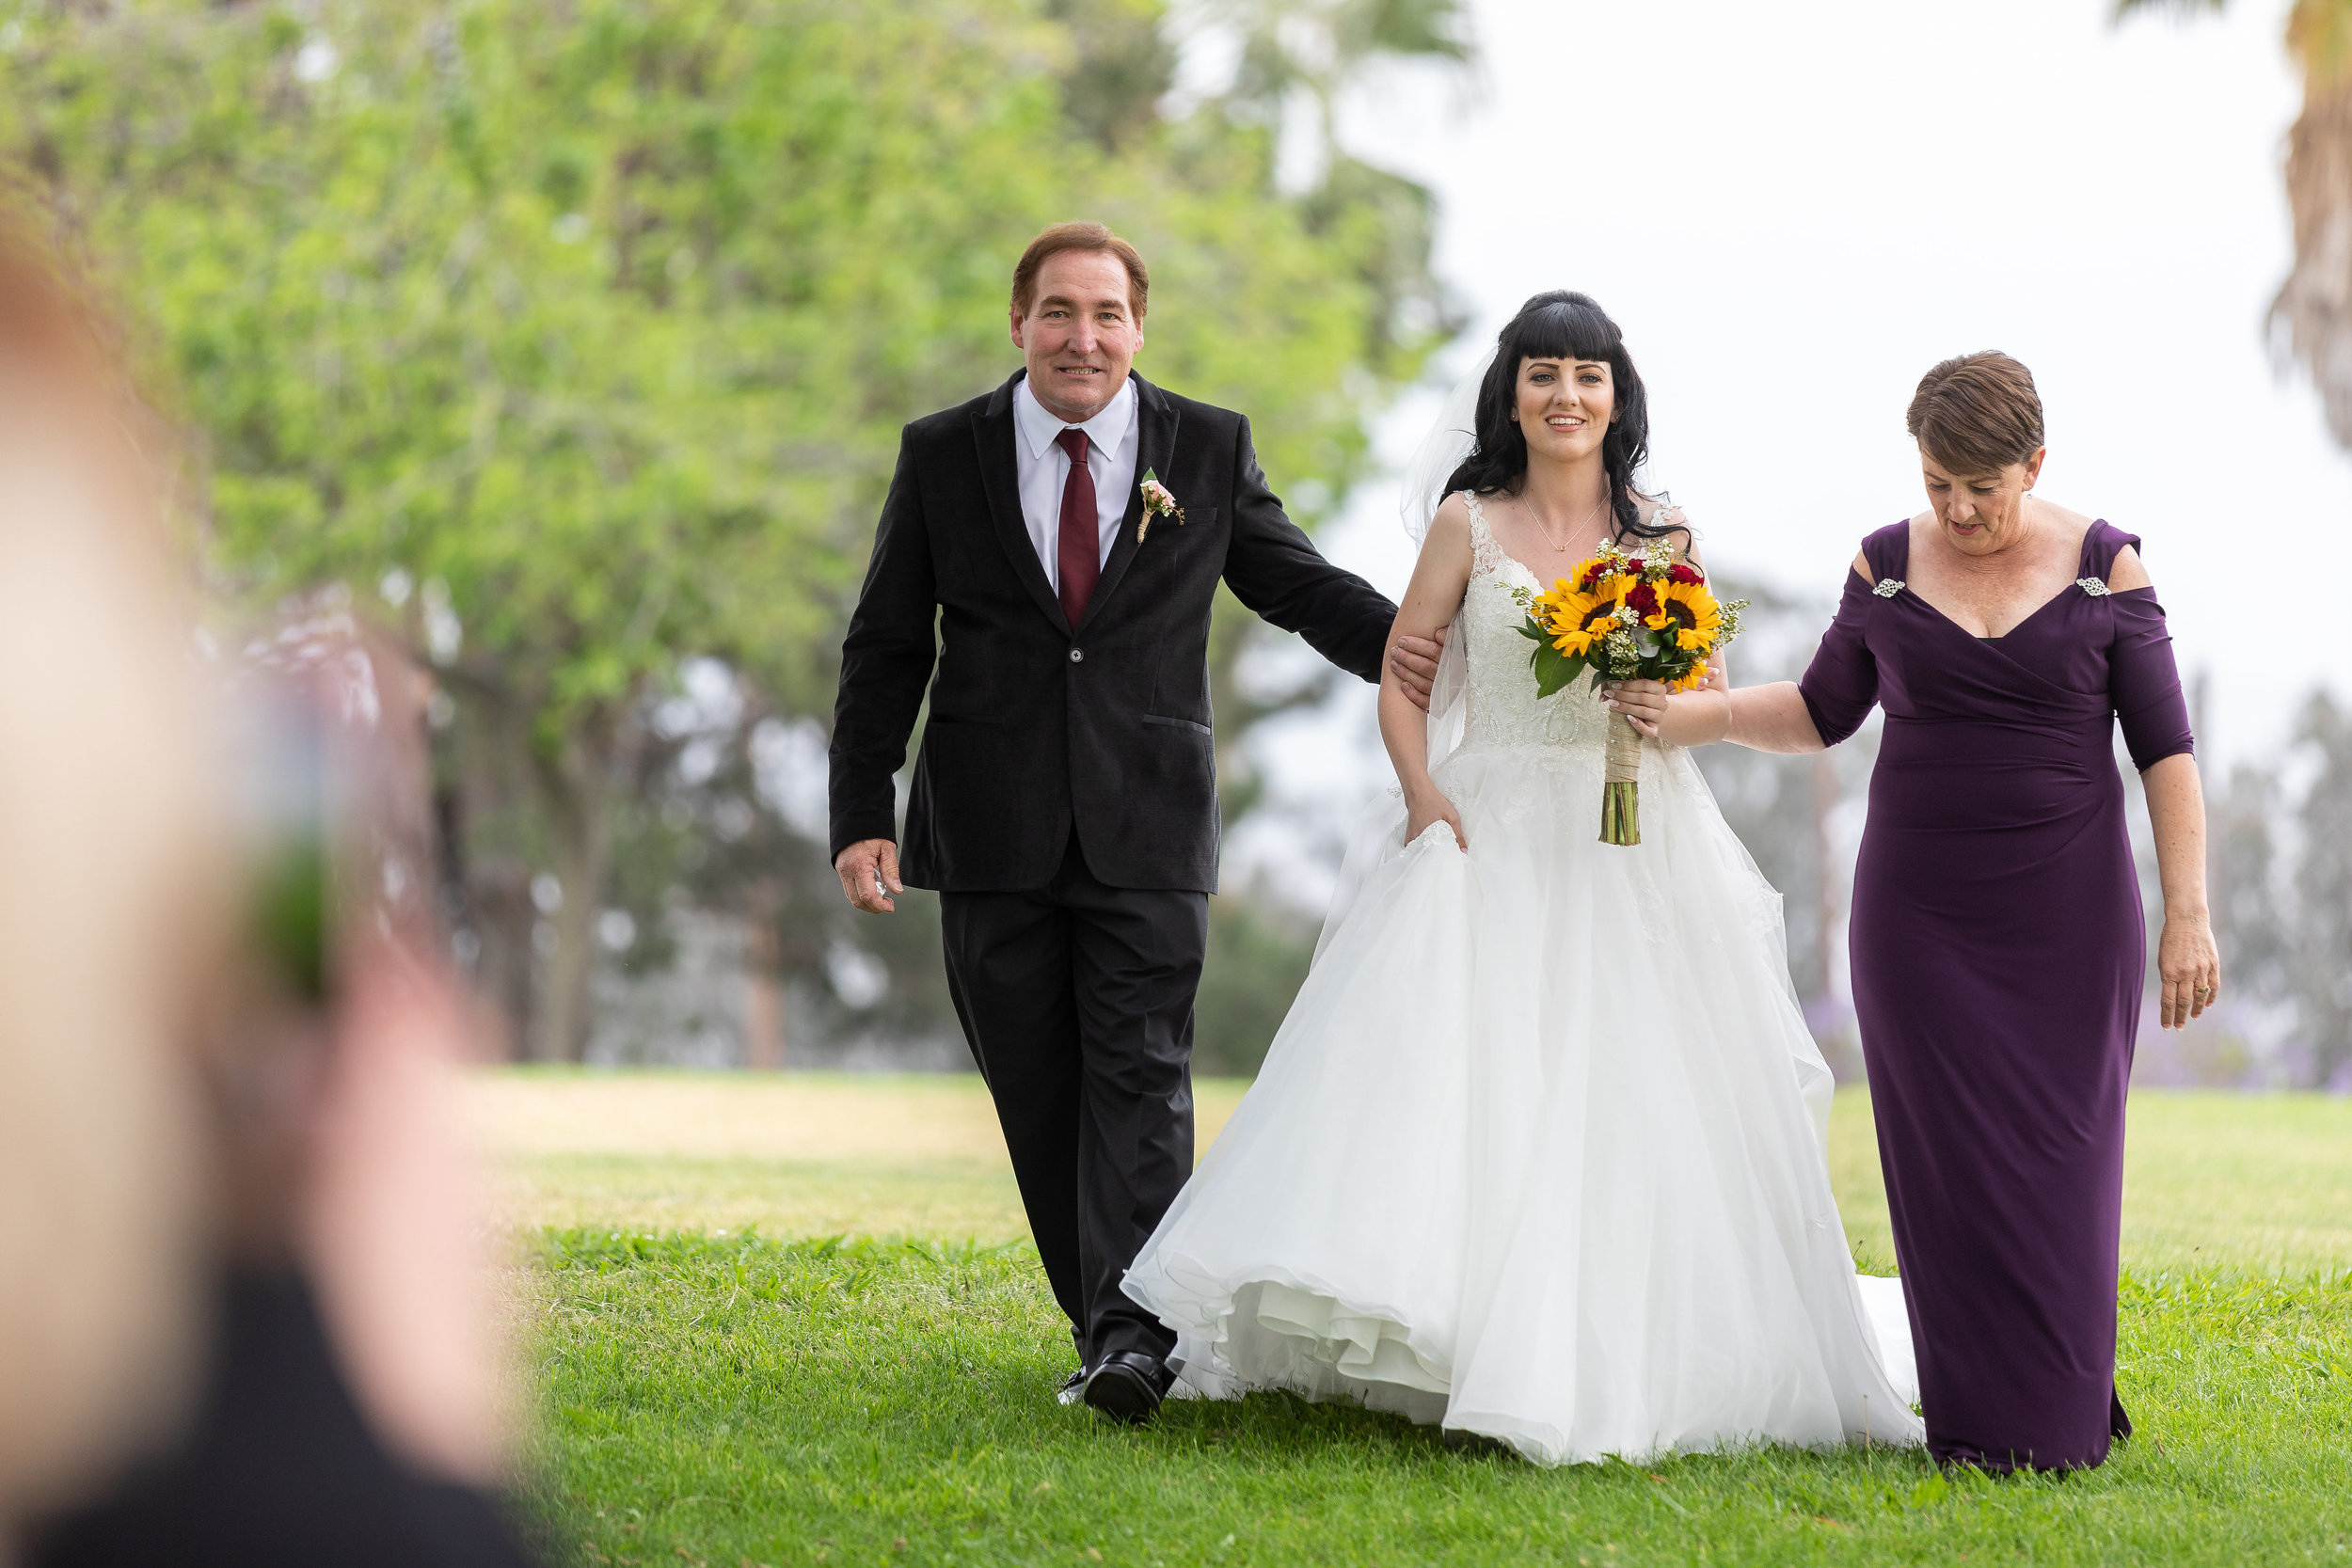 Photo of Wedding Bride walking down the aisle.jpg